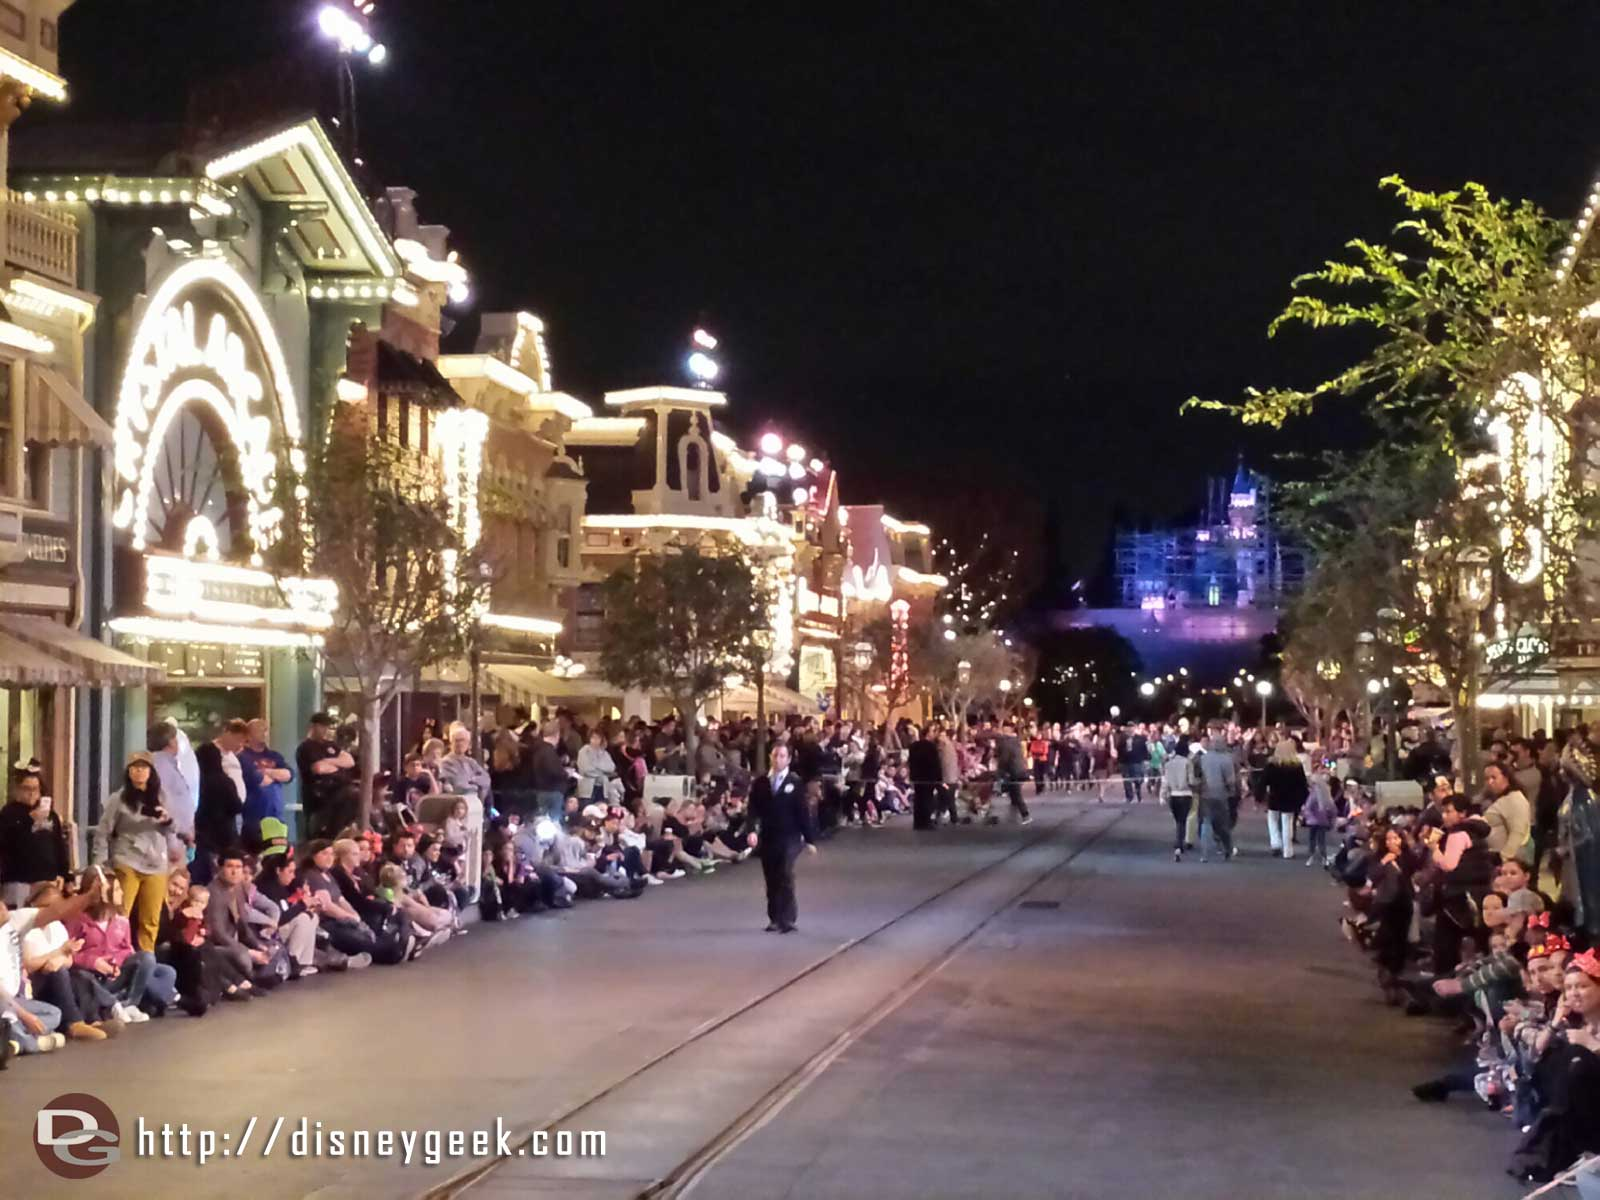 Main Street USA awaiting Mickey's Soundsational parade & #Frozen preparade